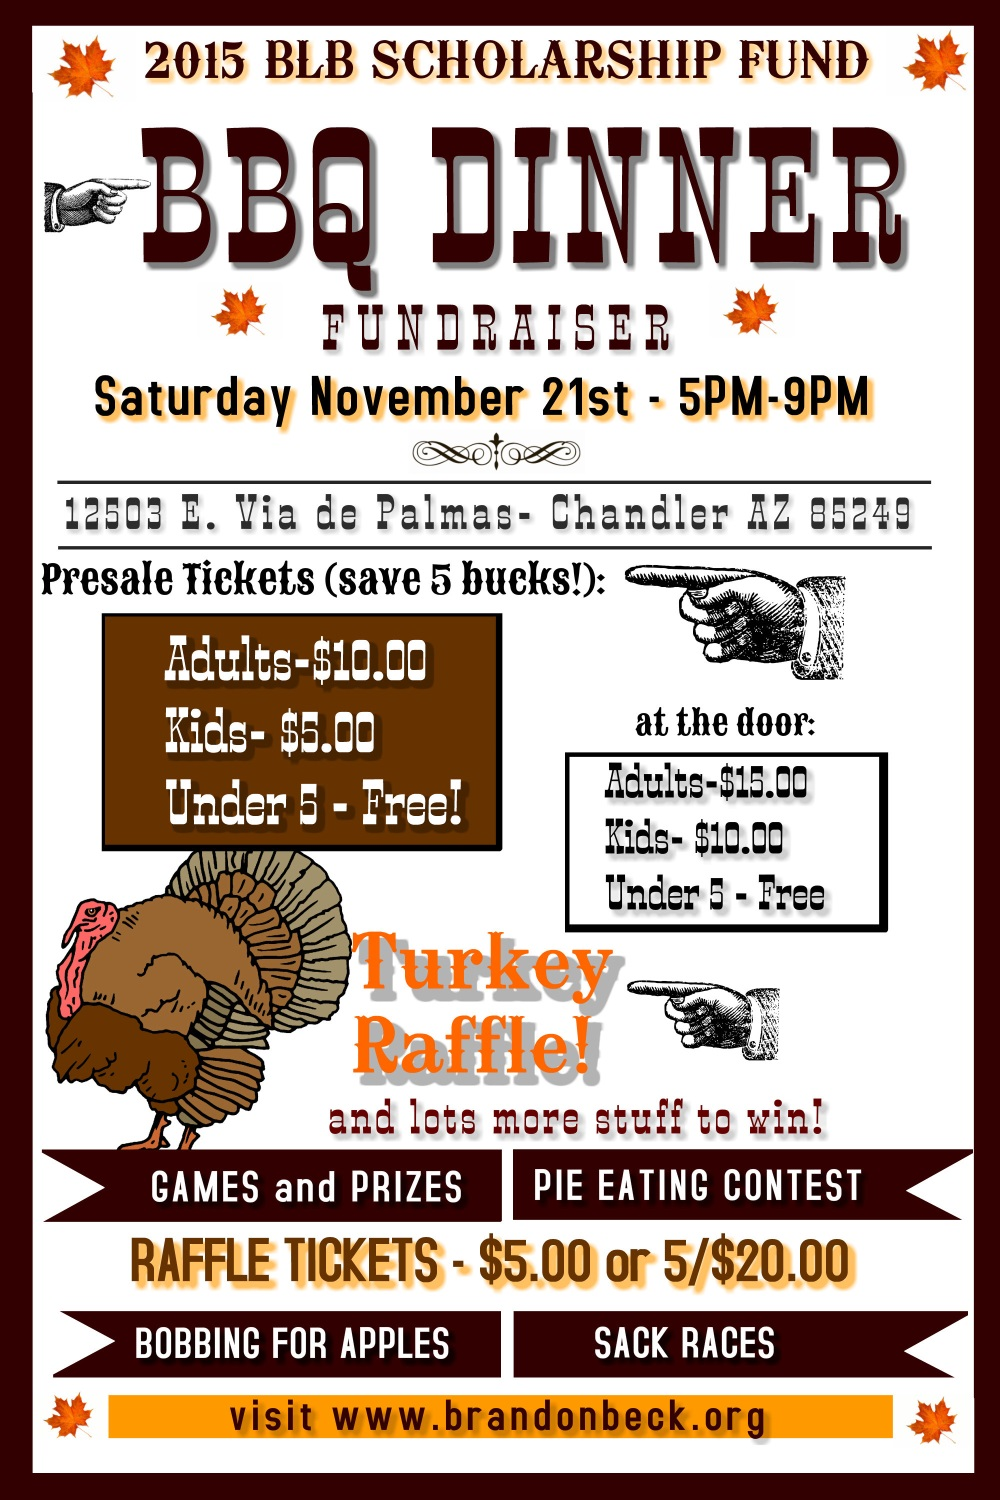 bbq and raffle flyer the blb memorial scholarship fund bbq and raffle flyer